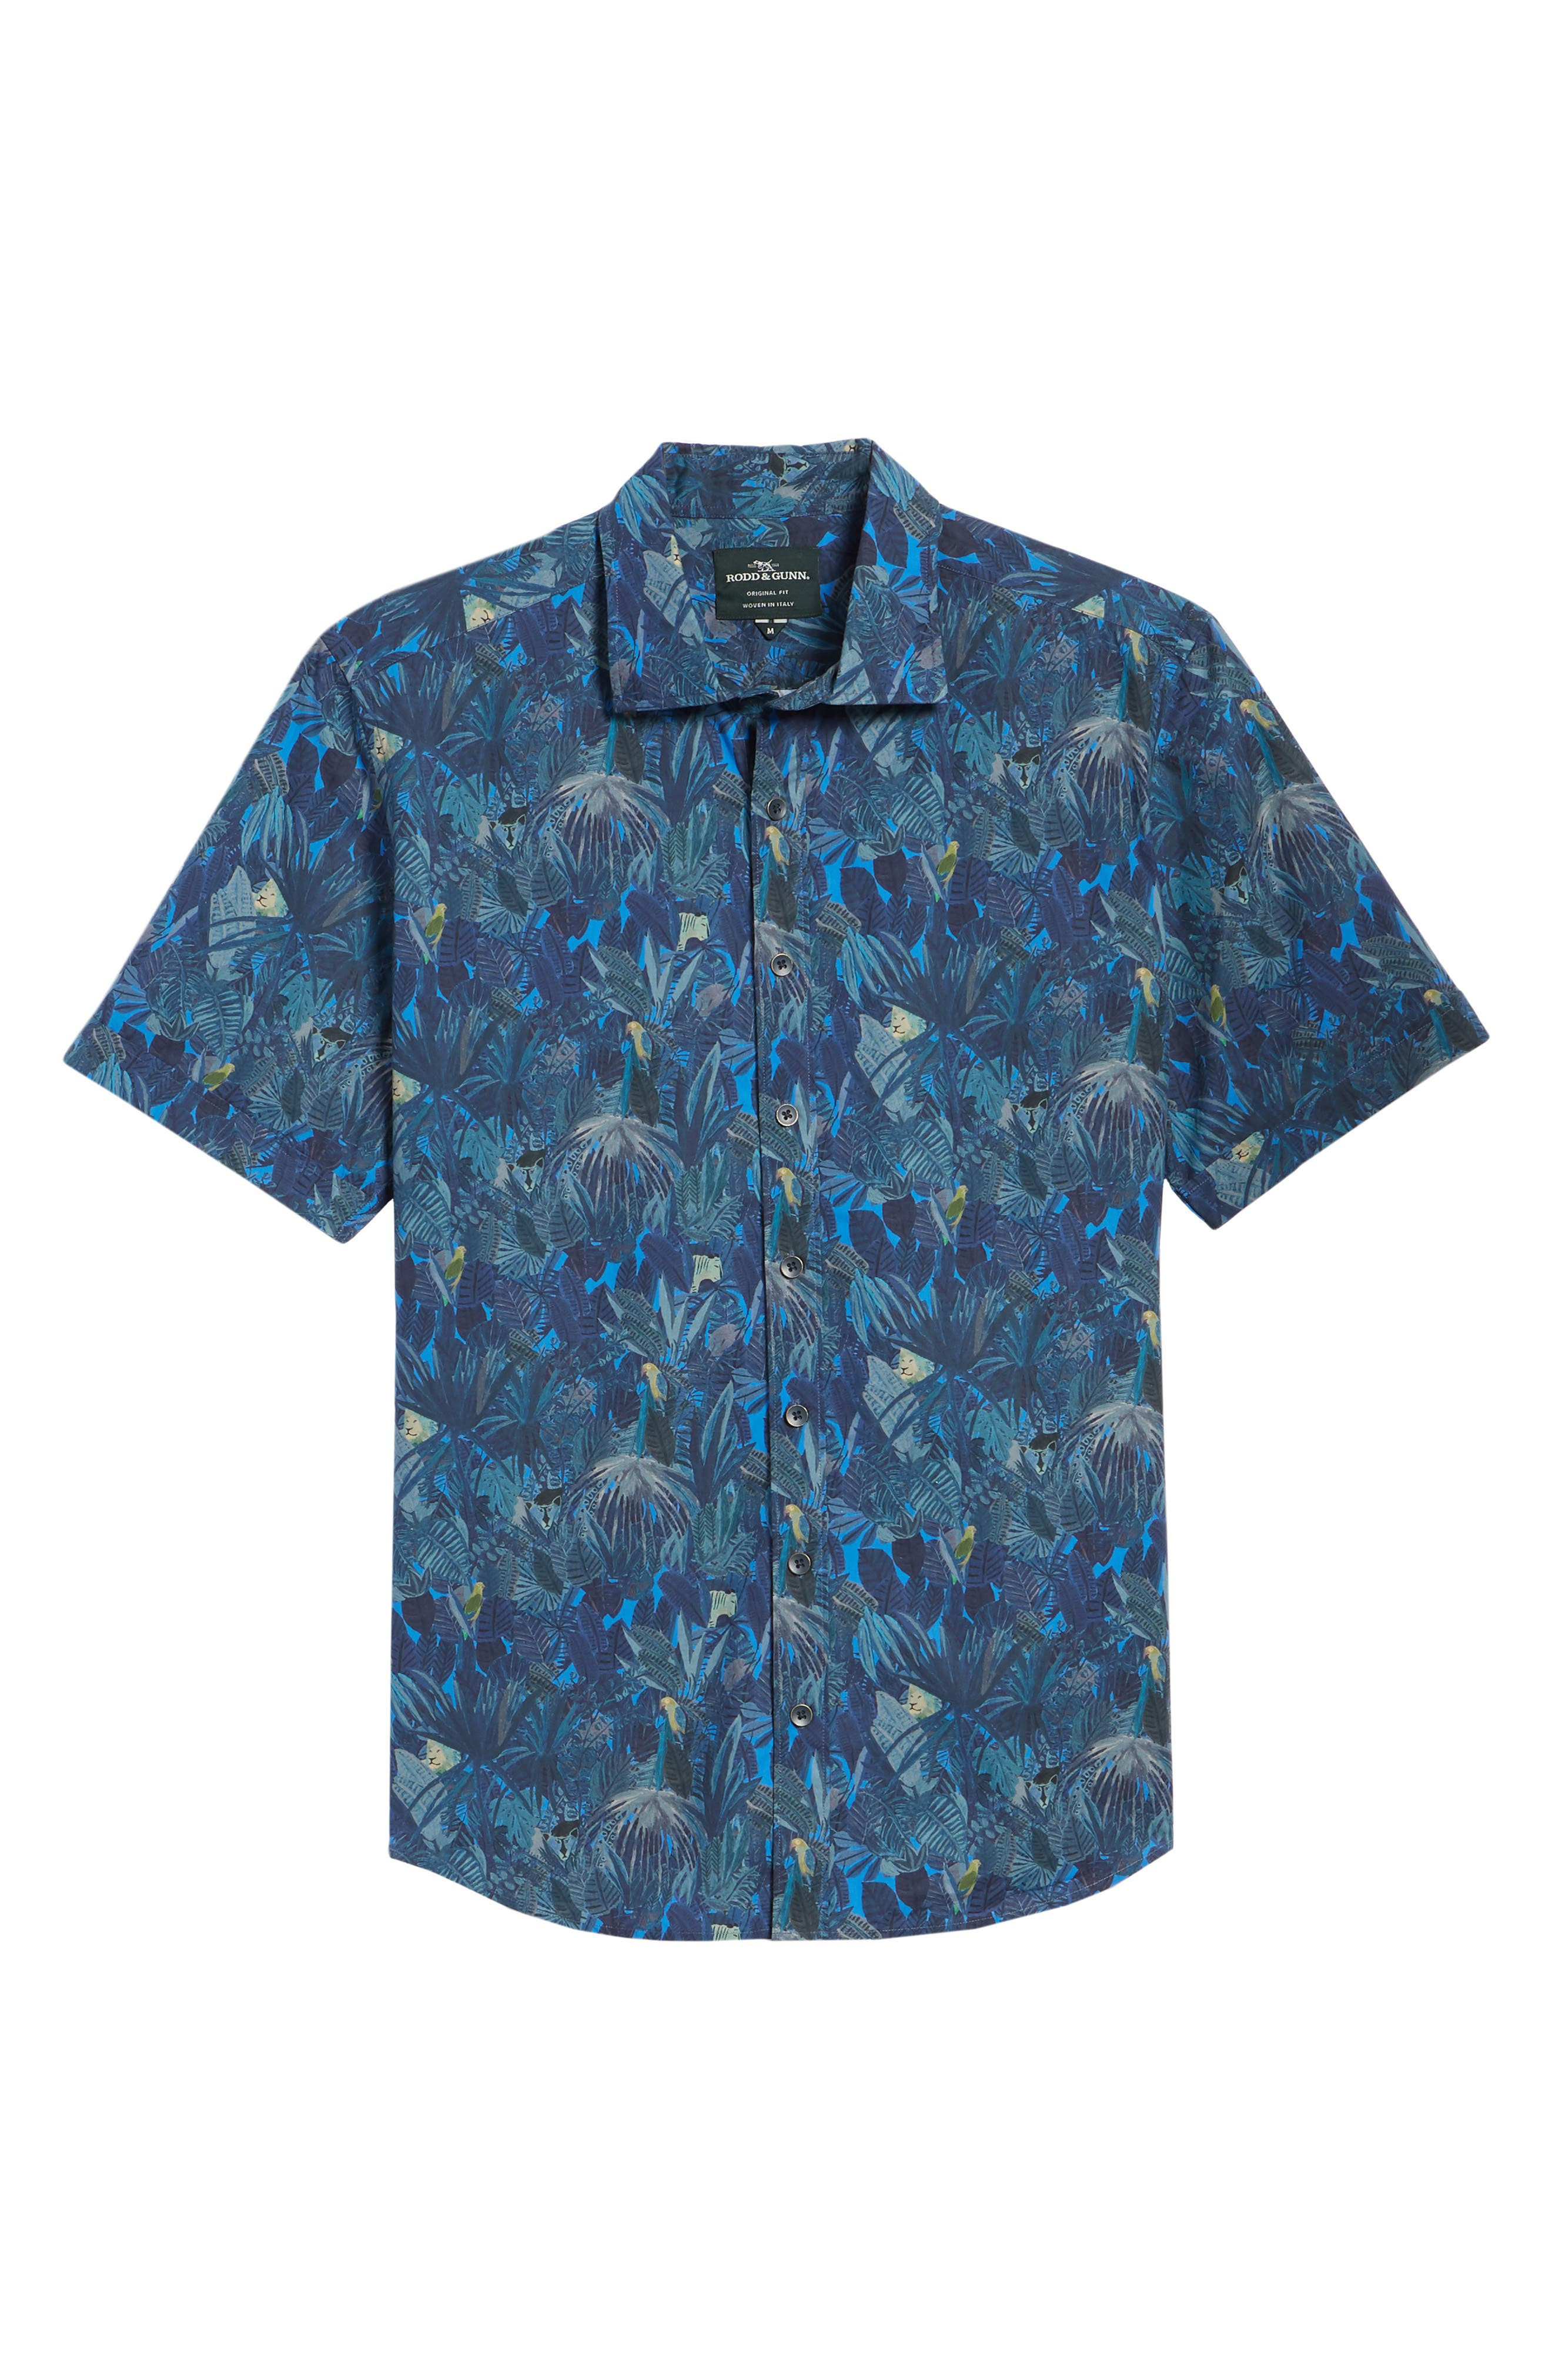 Chedworth Slim Fit Print Sport Shirt,                             Alternate thumbnail 6, color,                             343